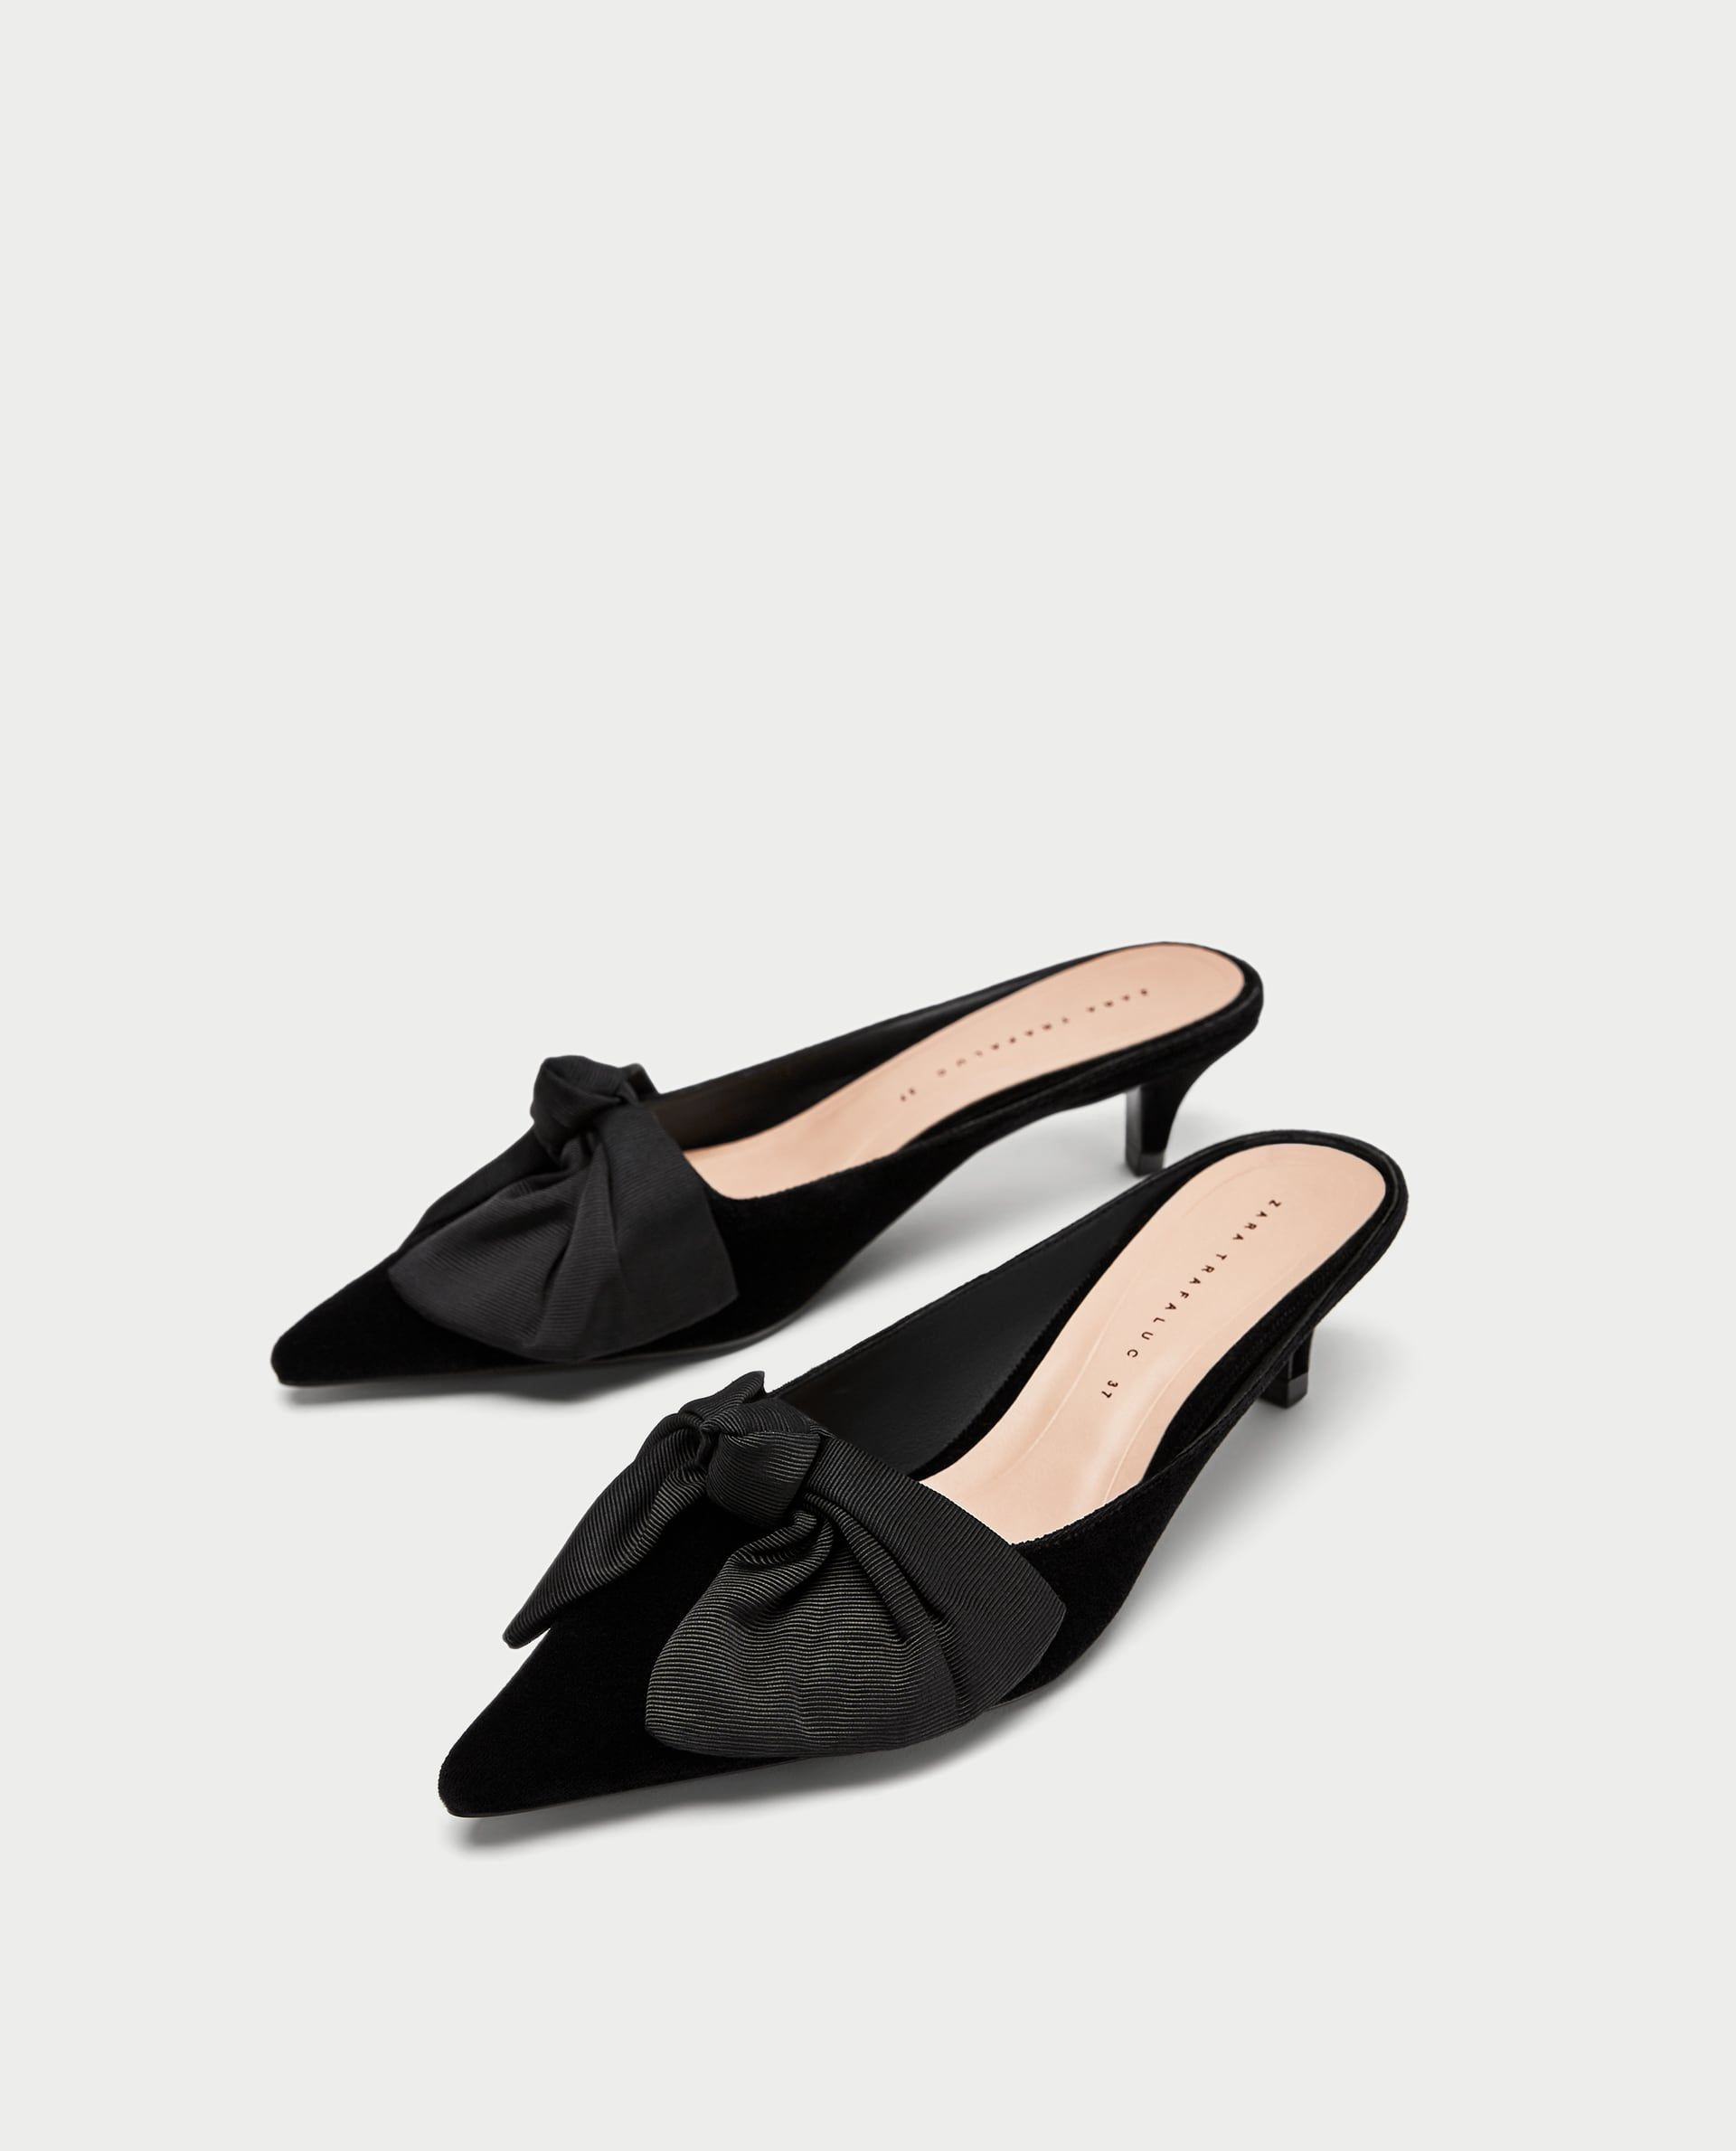 8660aa06945 Outfit on a Budget - Under  200 Shop the Sales  zara Kitten Heel Mules with  Bow